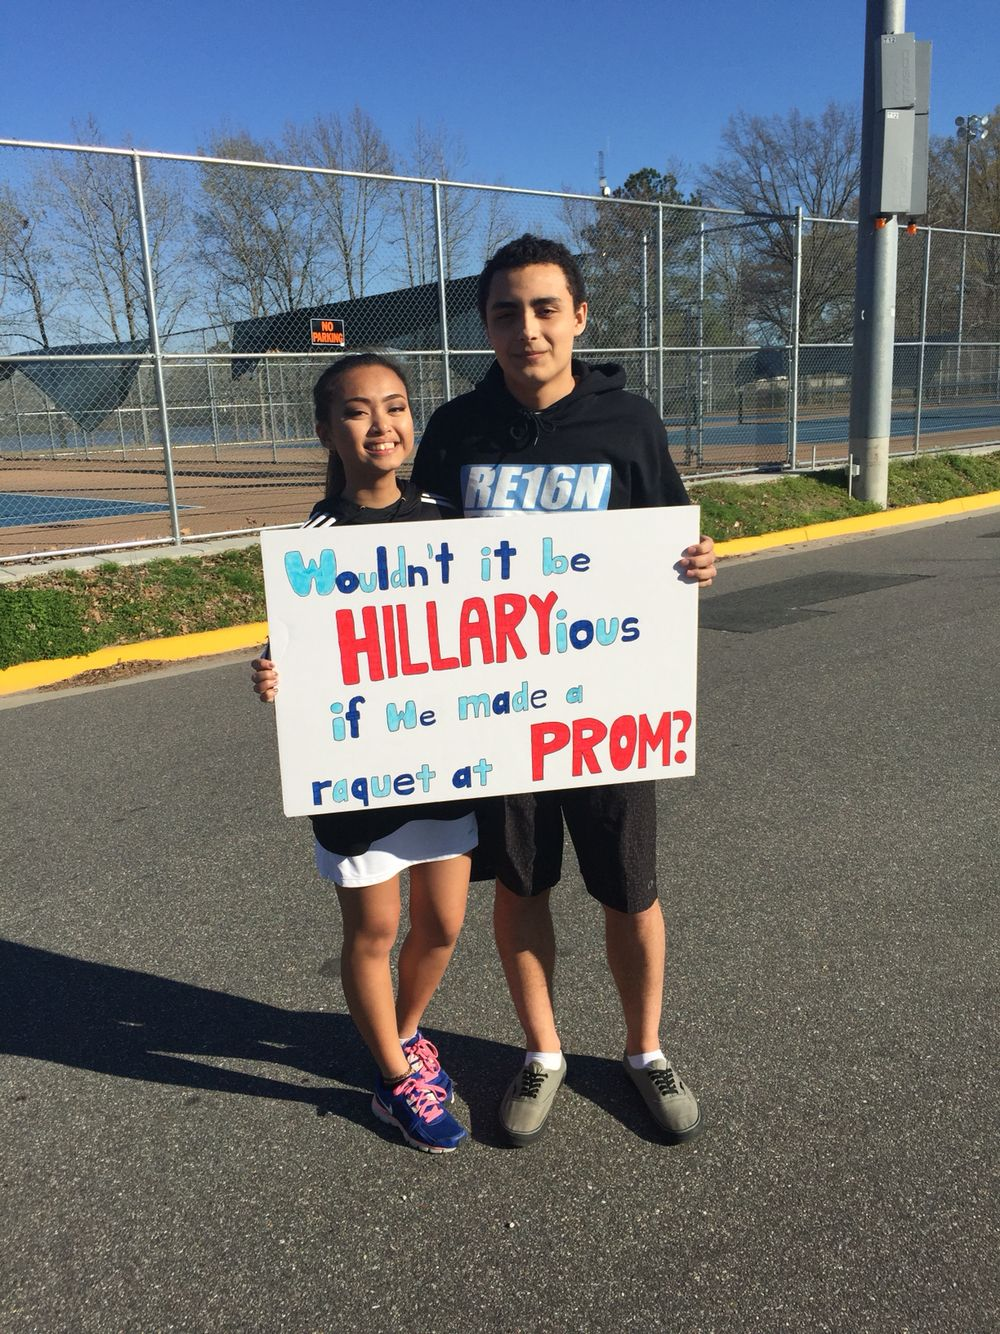 Promposal Tennis Prom Prom Proposal Homecoming Proposal Cute Homecoming Proposals Asking To Prom